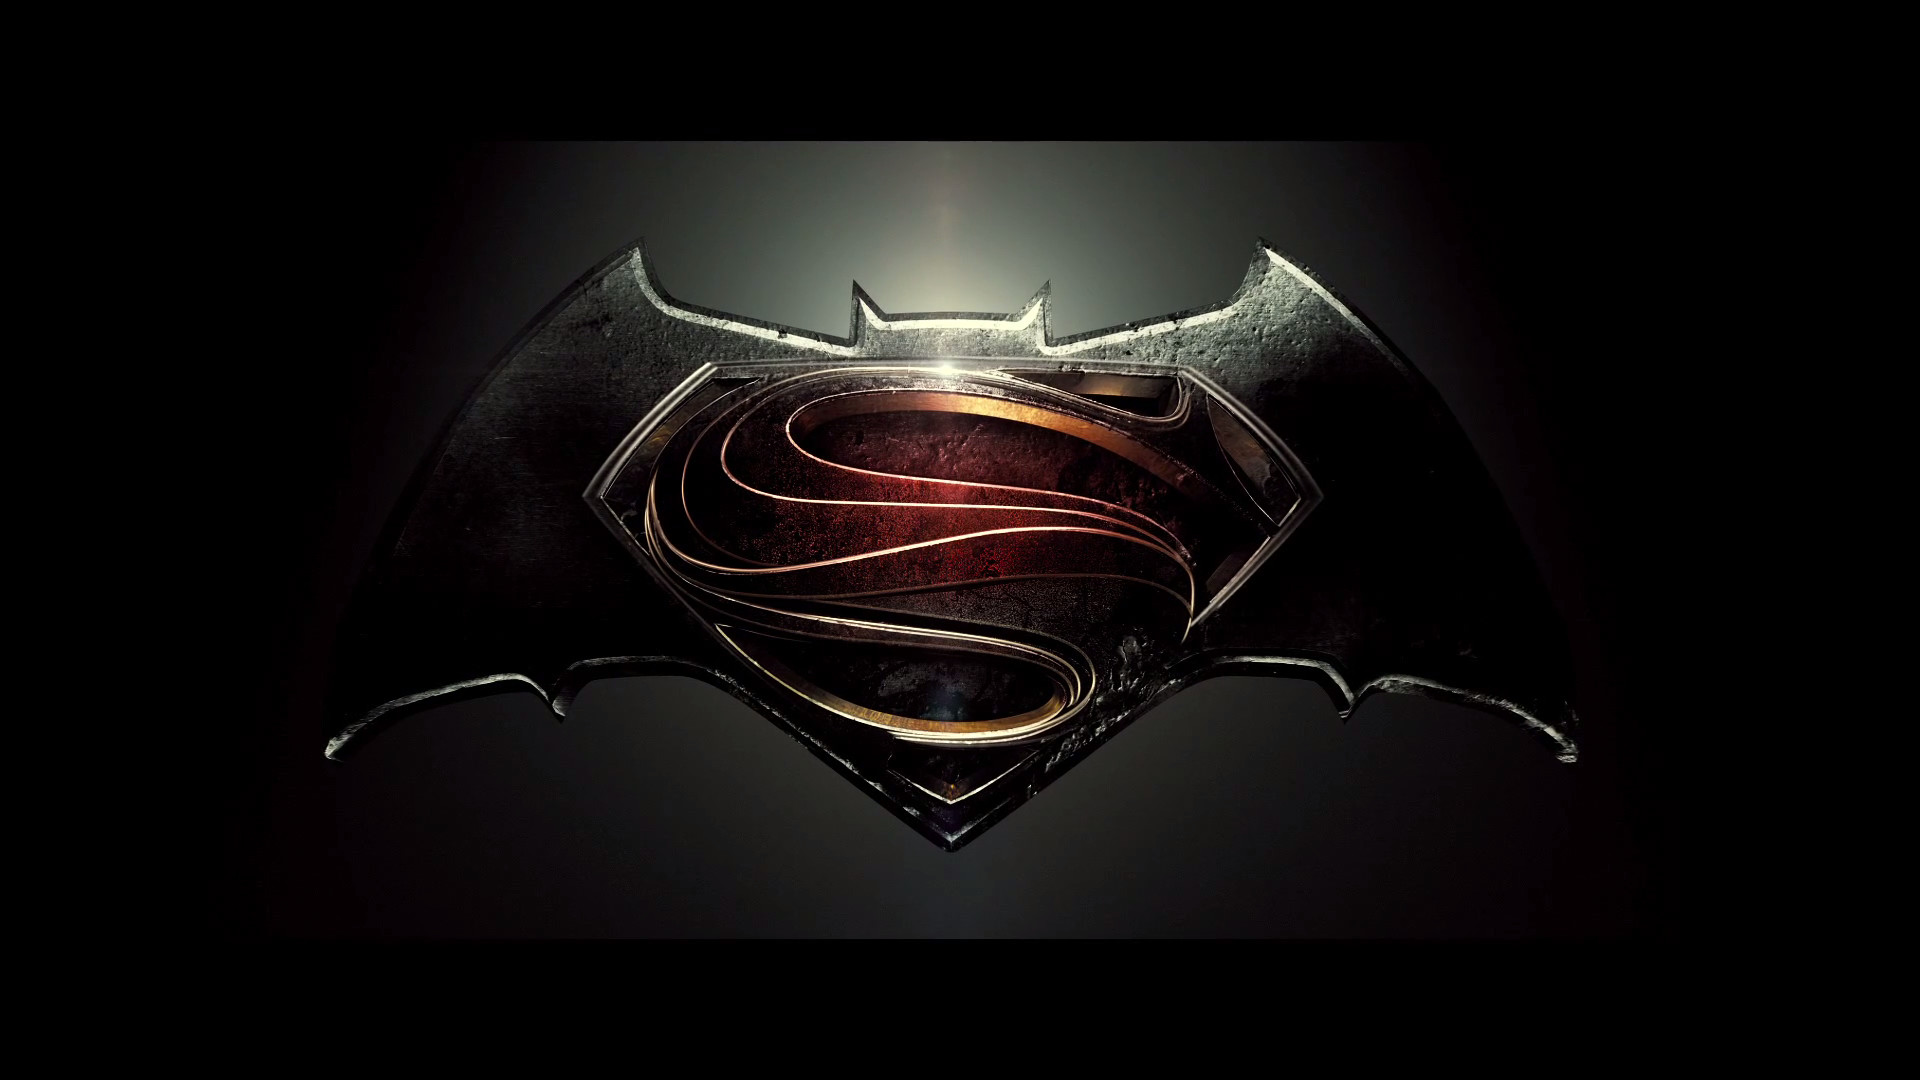 83 Batman v Superman: Dawn of Justice HD Wallpapers   Backgrounds –  Wallpaper Abyss